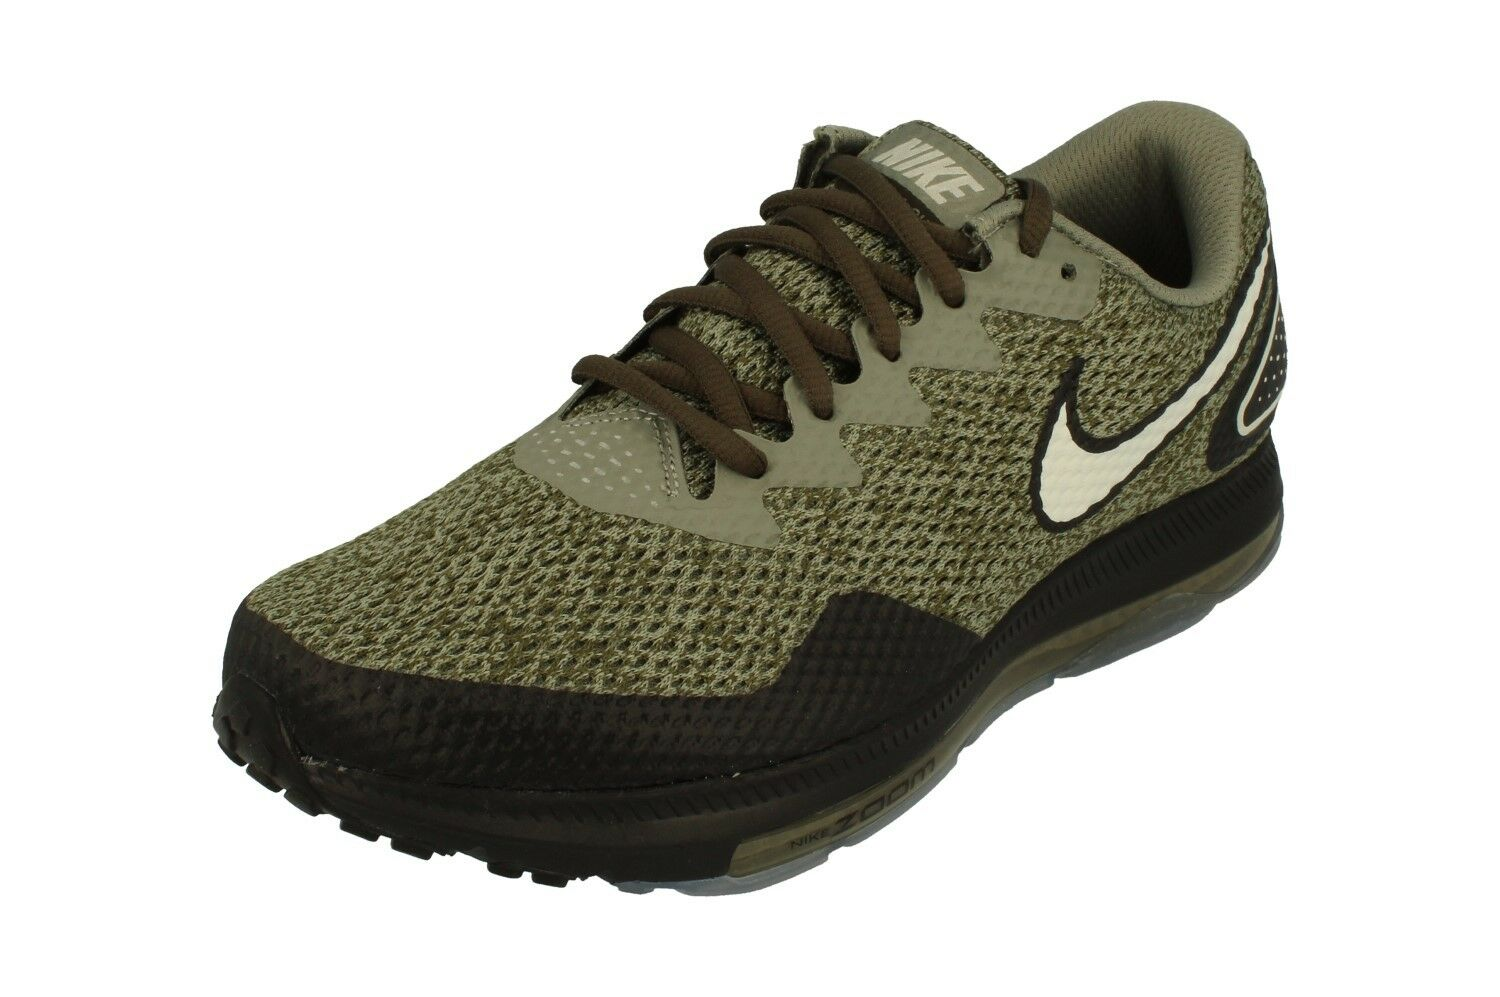 Nike Zoom All Out Low 2 Mens Running Trainers Aj0035 Sneakers Schuhes 300